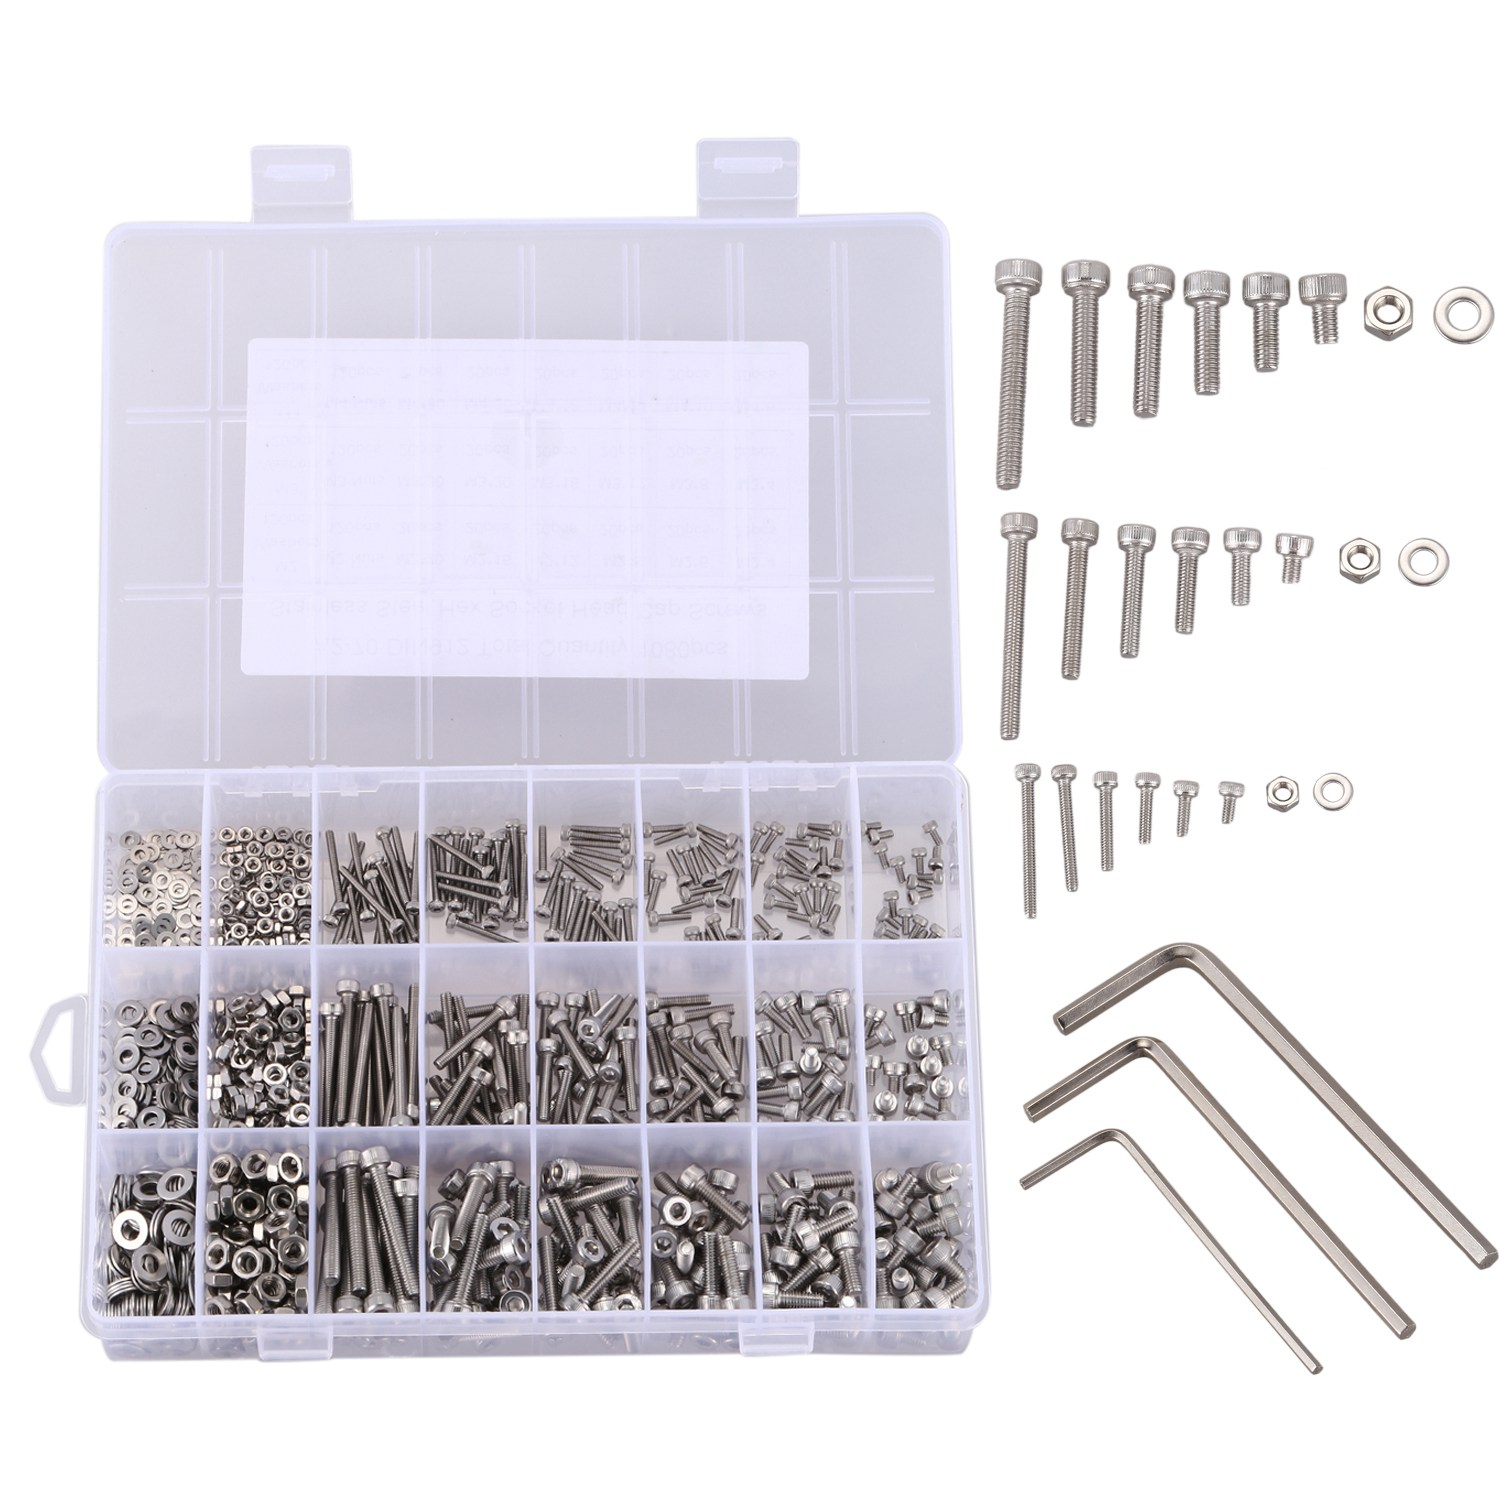 CNIM Hot 1080pcs Silver Stainless Steel Screw And Nut Hex Wrenches Flat Washer Assortment Set Kit With Storage BoxCNIM Hot 1080pcs Silver Stainless Steel Screw And Nut Hex Wrenches Flat Washer Assortment Set Kit With Storage Box